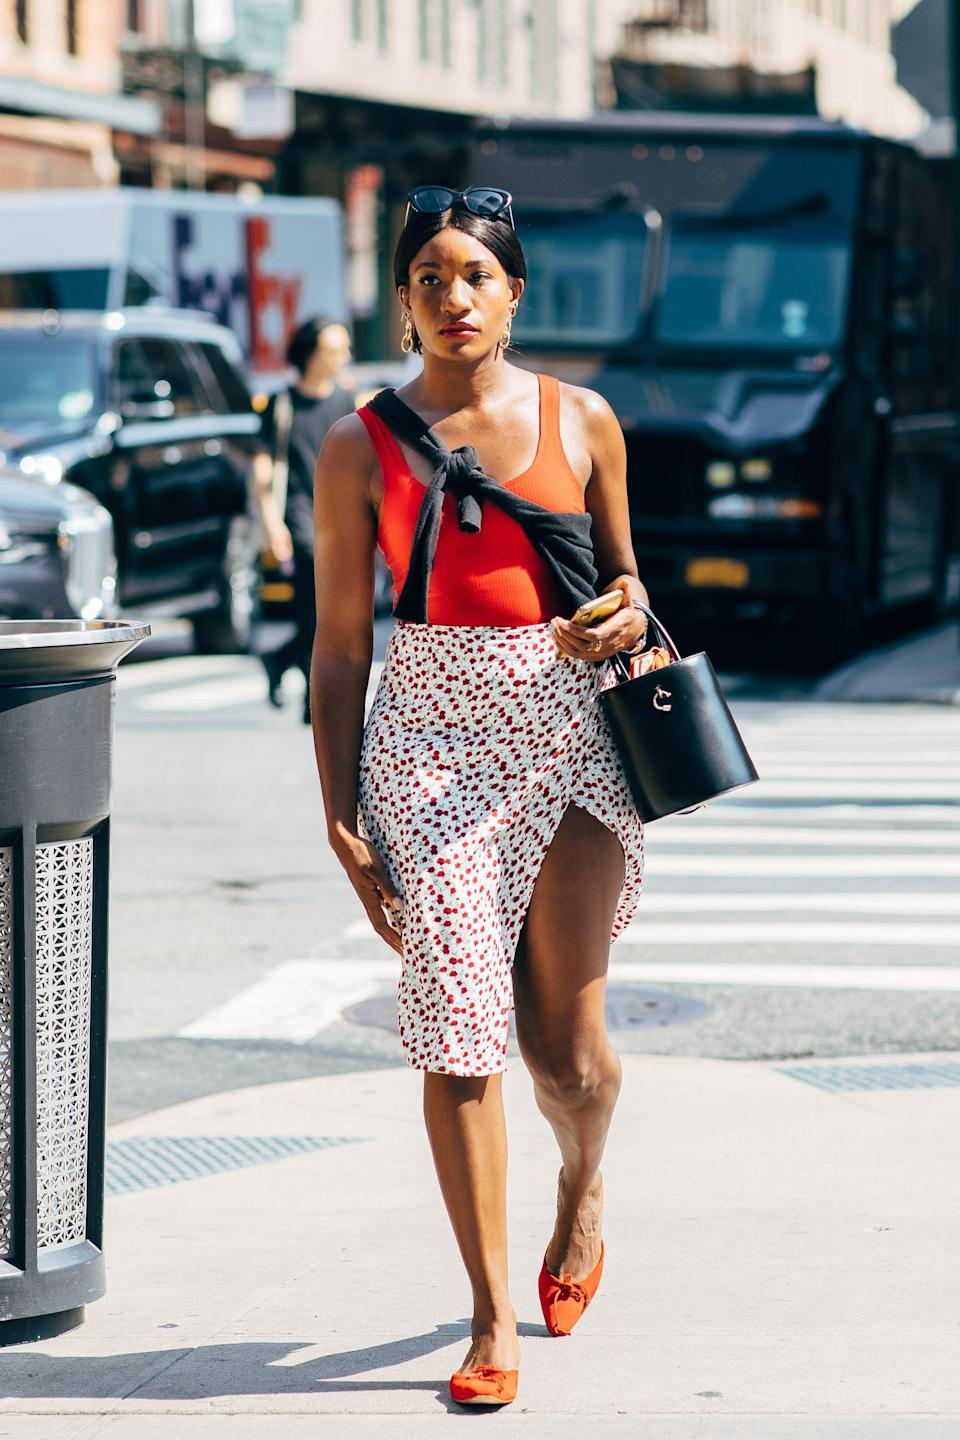 <p>A skirt doesn't have to be fussy - just top it with an understated tank. </p>